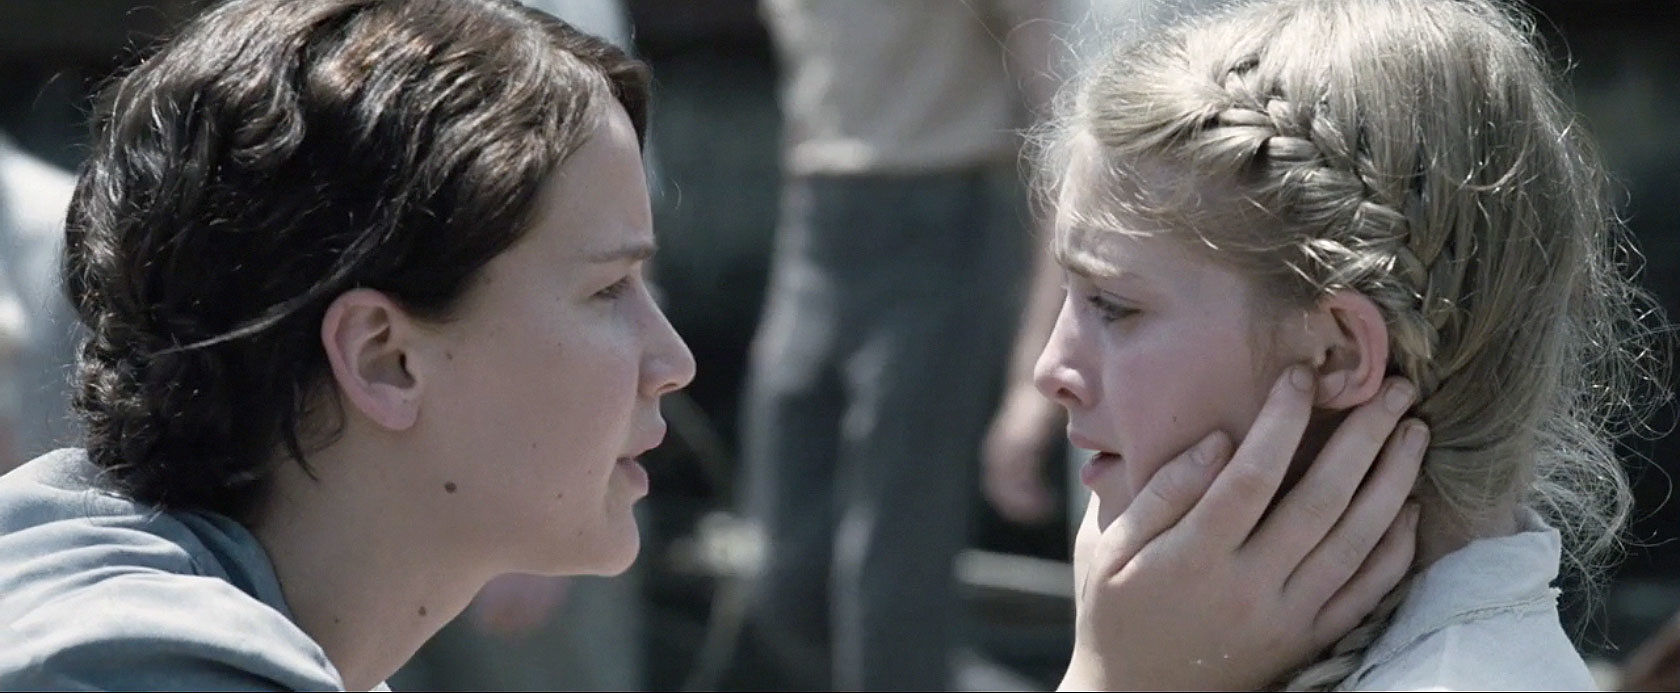 prim and katniss relationship